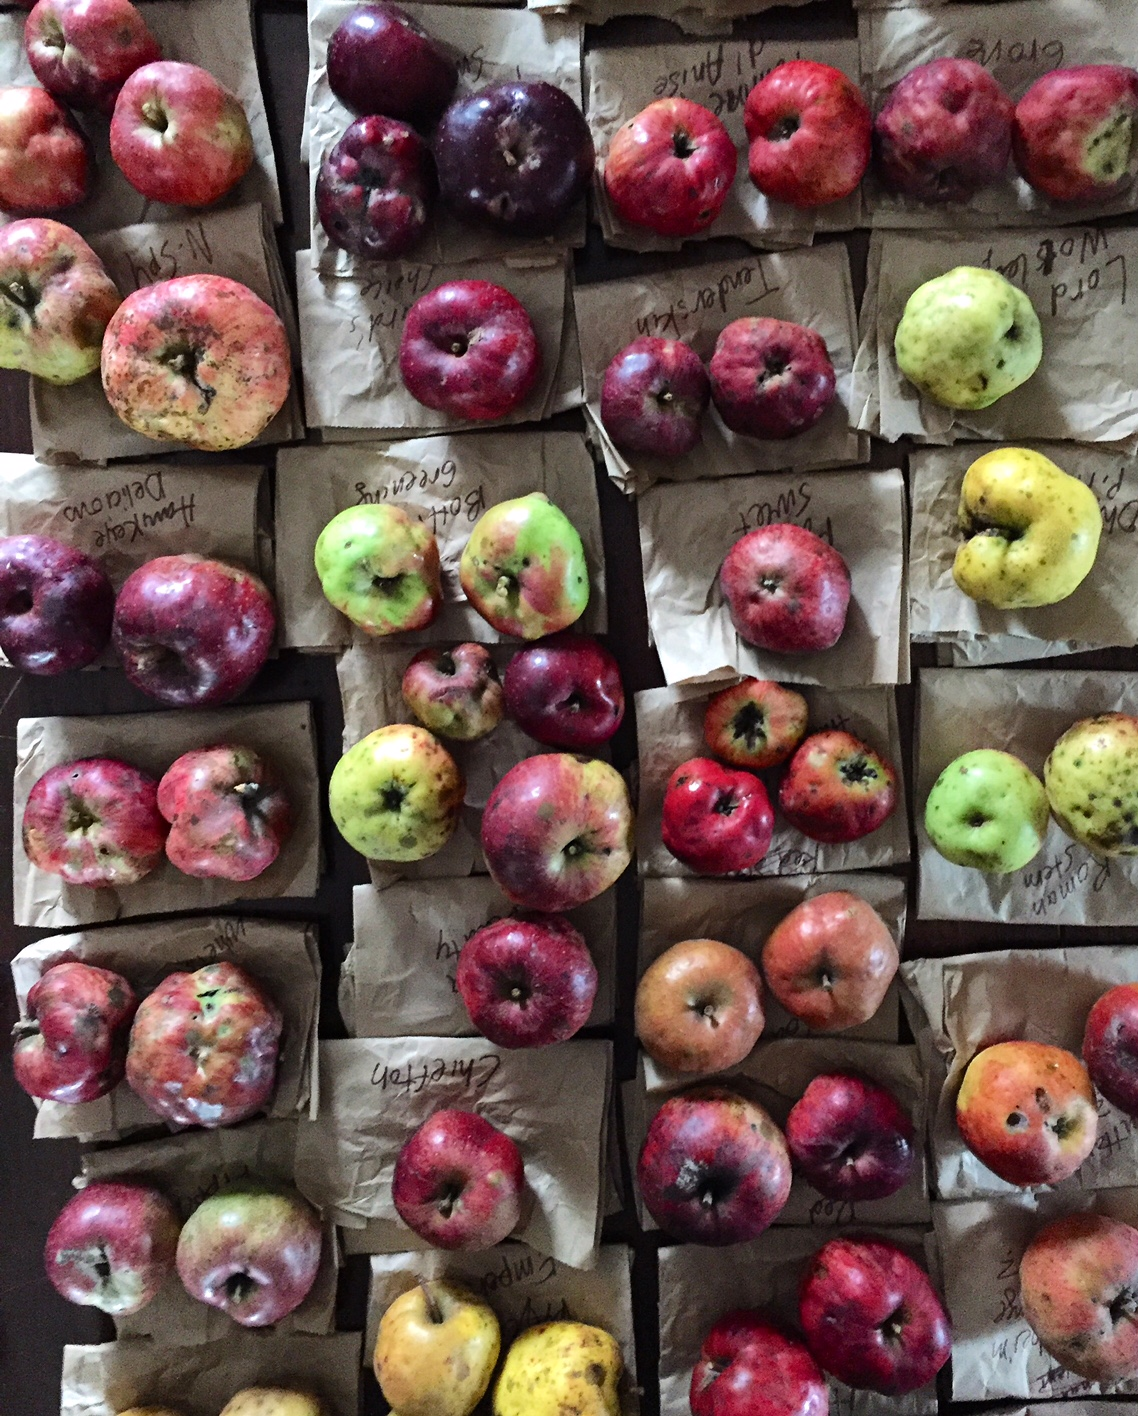 Rare heirloom antique apple varieties, Homestead Monthly: October 2016 {shiitakes, rare apples, and an unfortunate honey harvest} | Whole-Fed Homestead